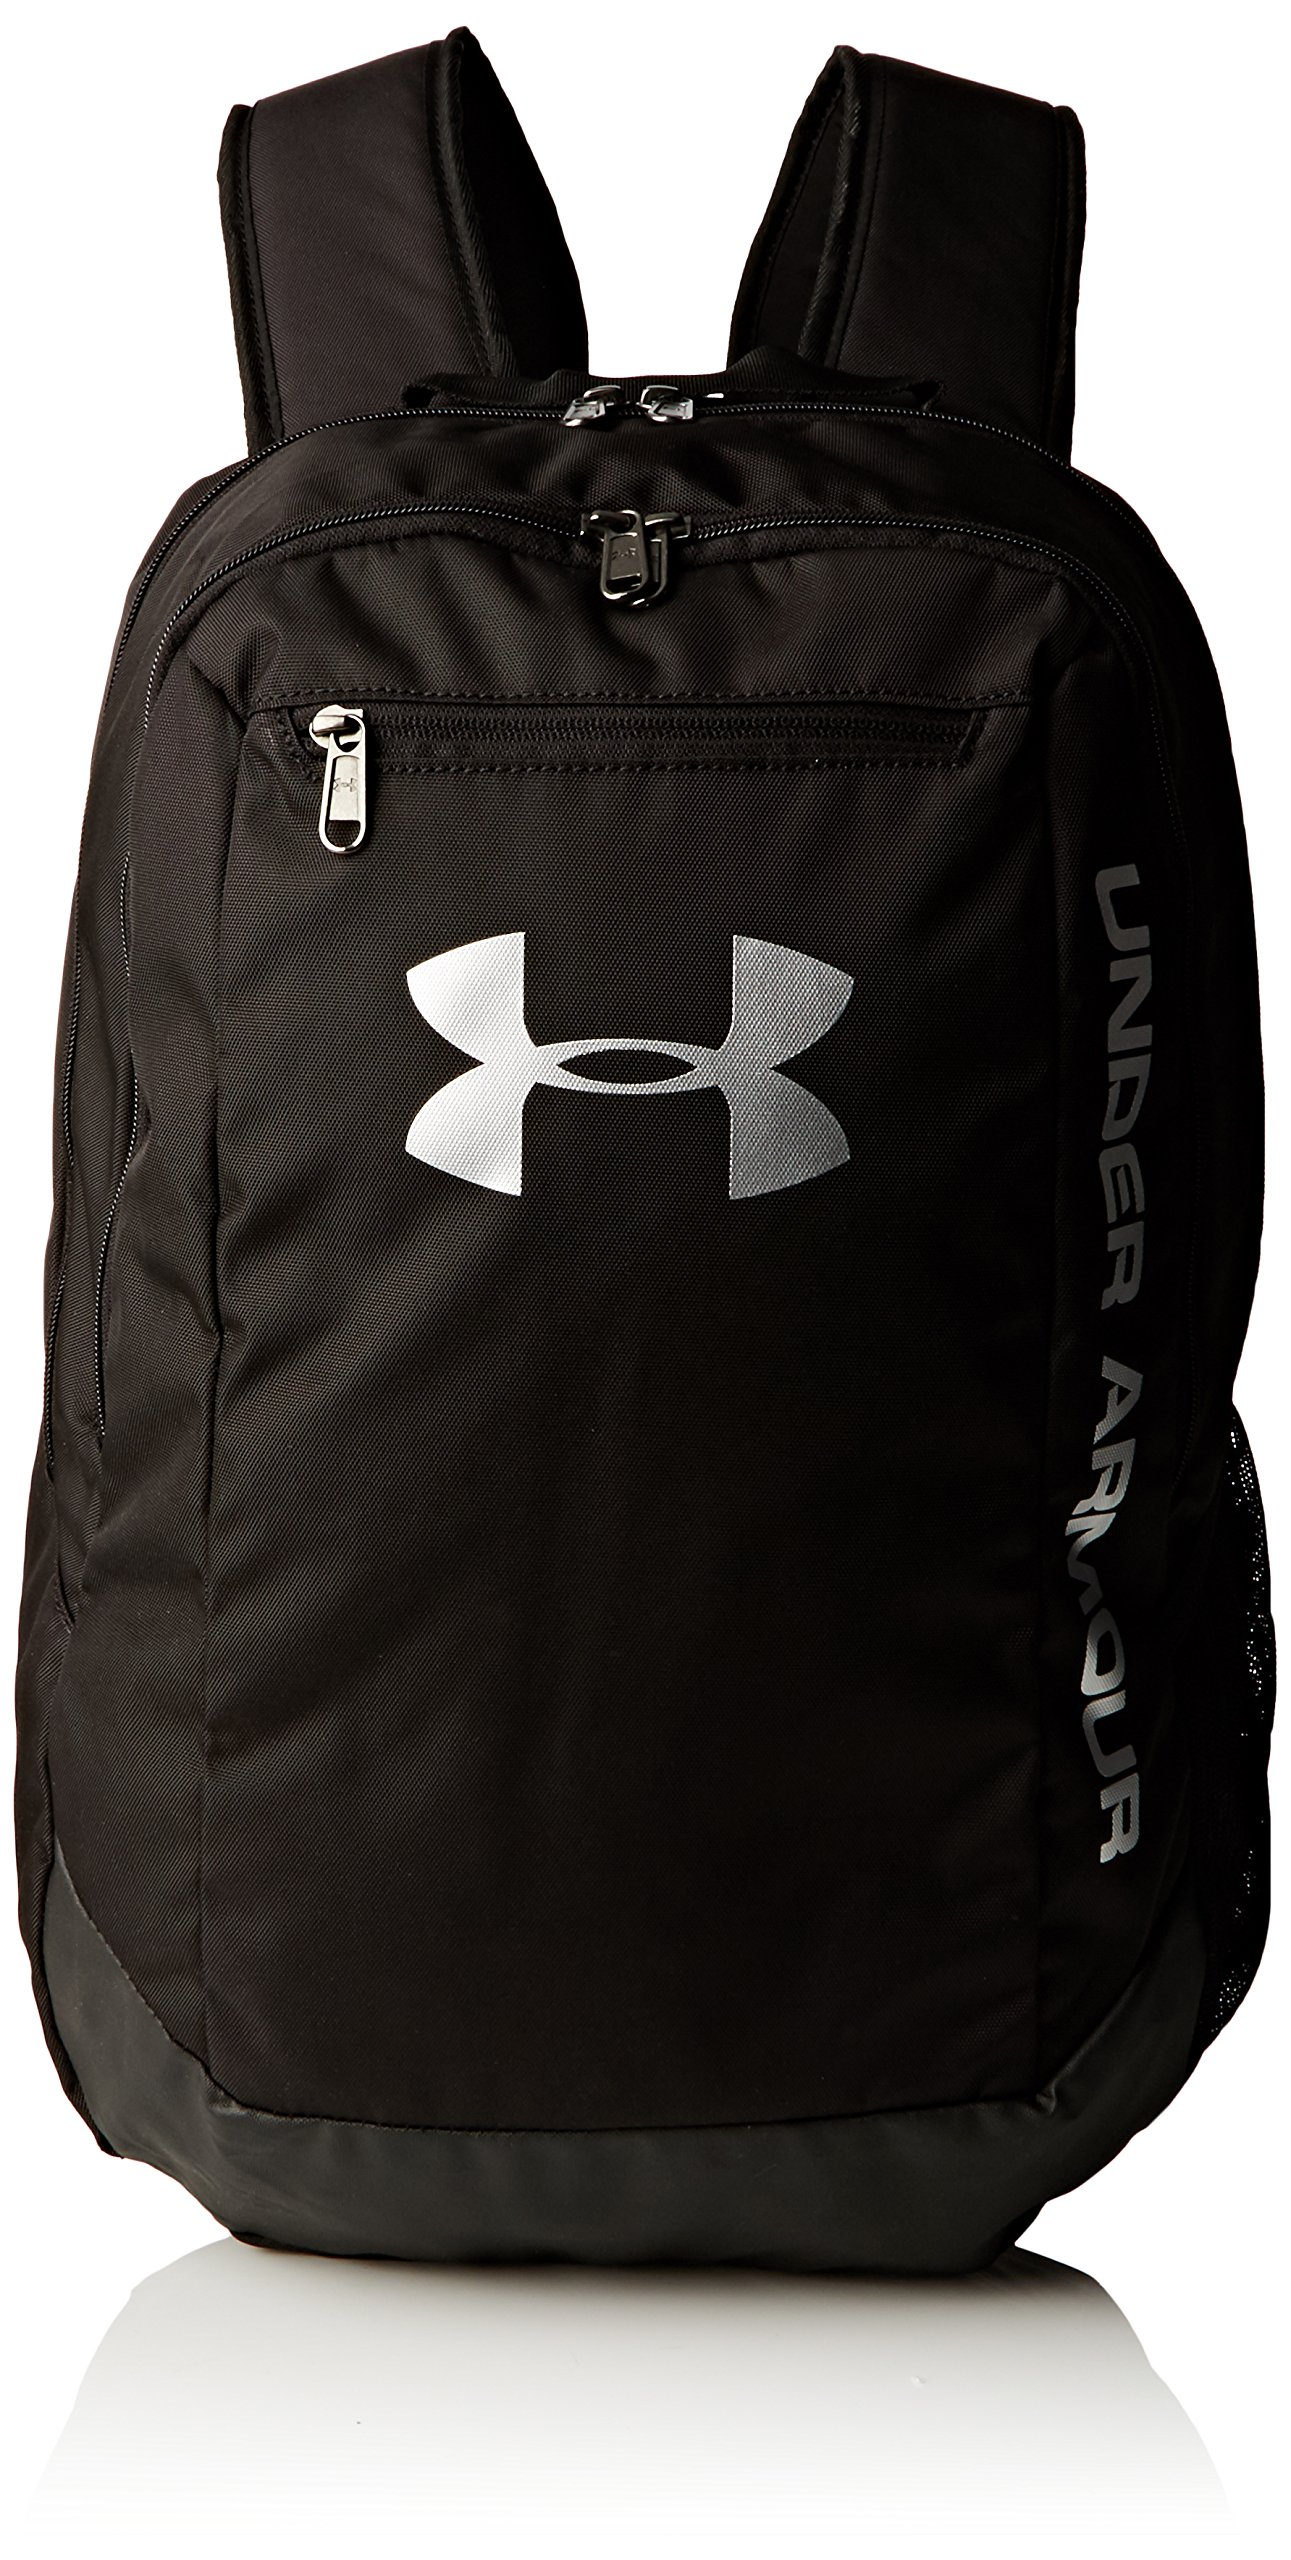 ddee7b2cb424 Get Quotations · Under Armour Unisex UA Hustle Backpack LDWR